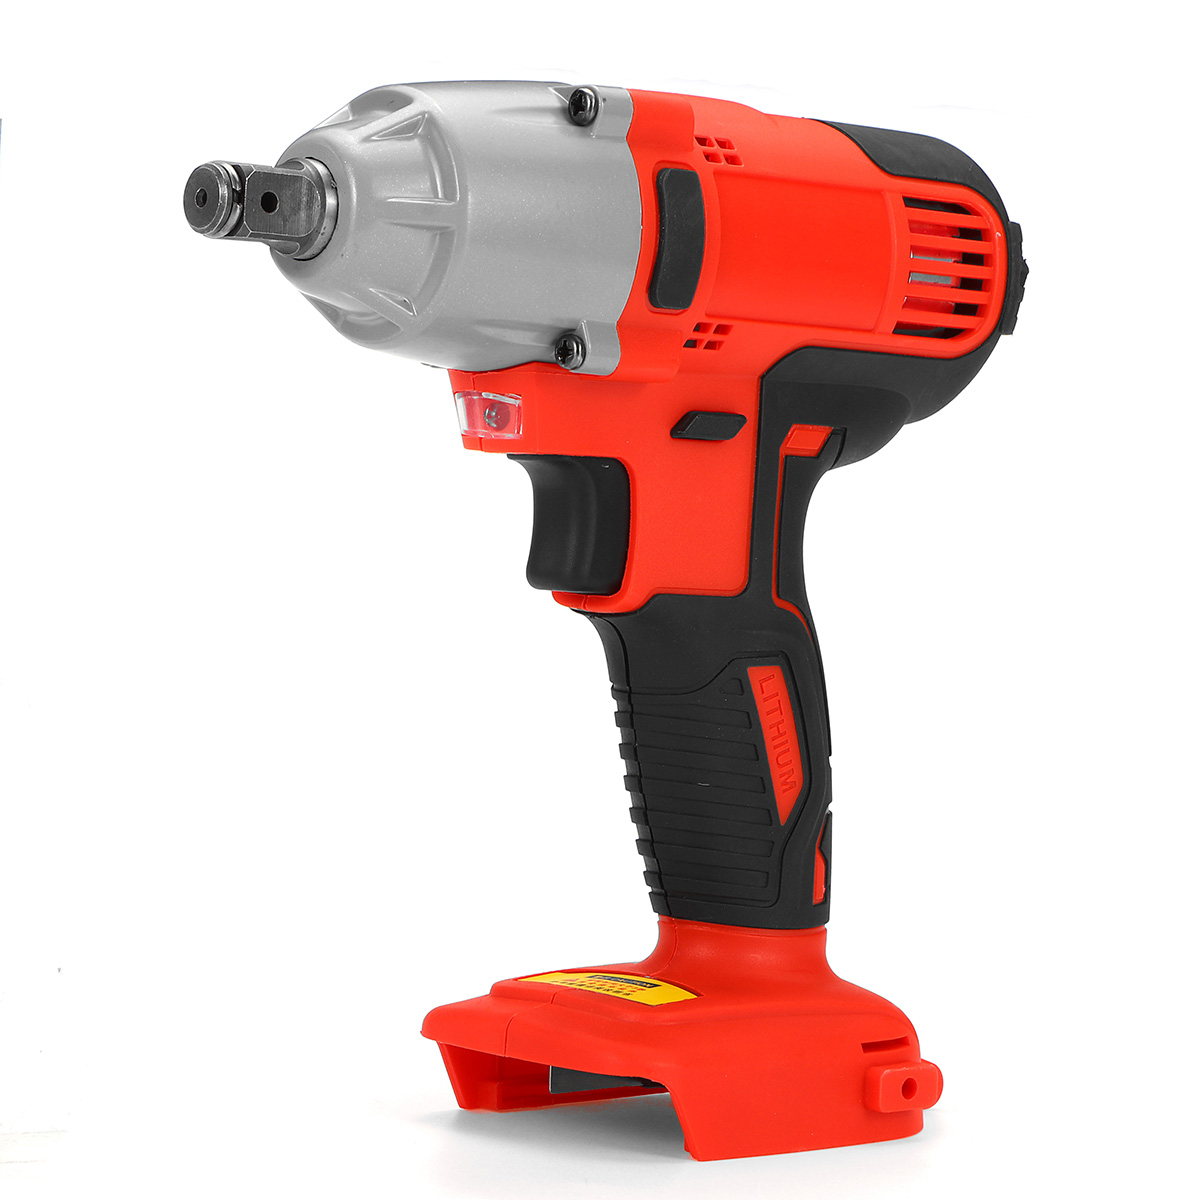 18V <font><b>480Nm</b></font> Impact Wrench Cordless Electric Wrench Replacement Power Tool Torque Rechargeable With <font><b>LED</b></font> Lights For Home Car Repaire image